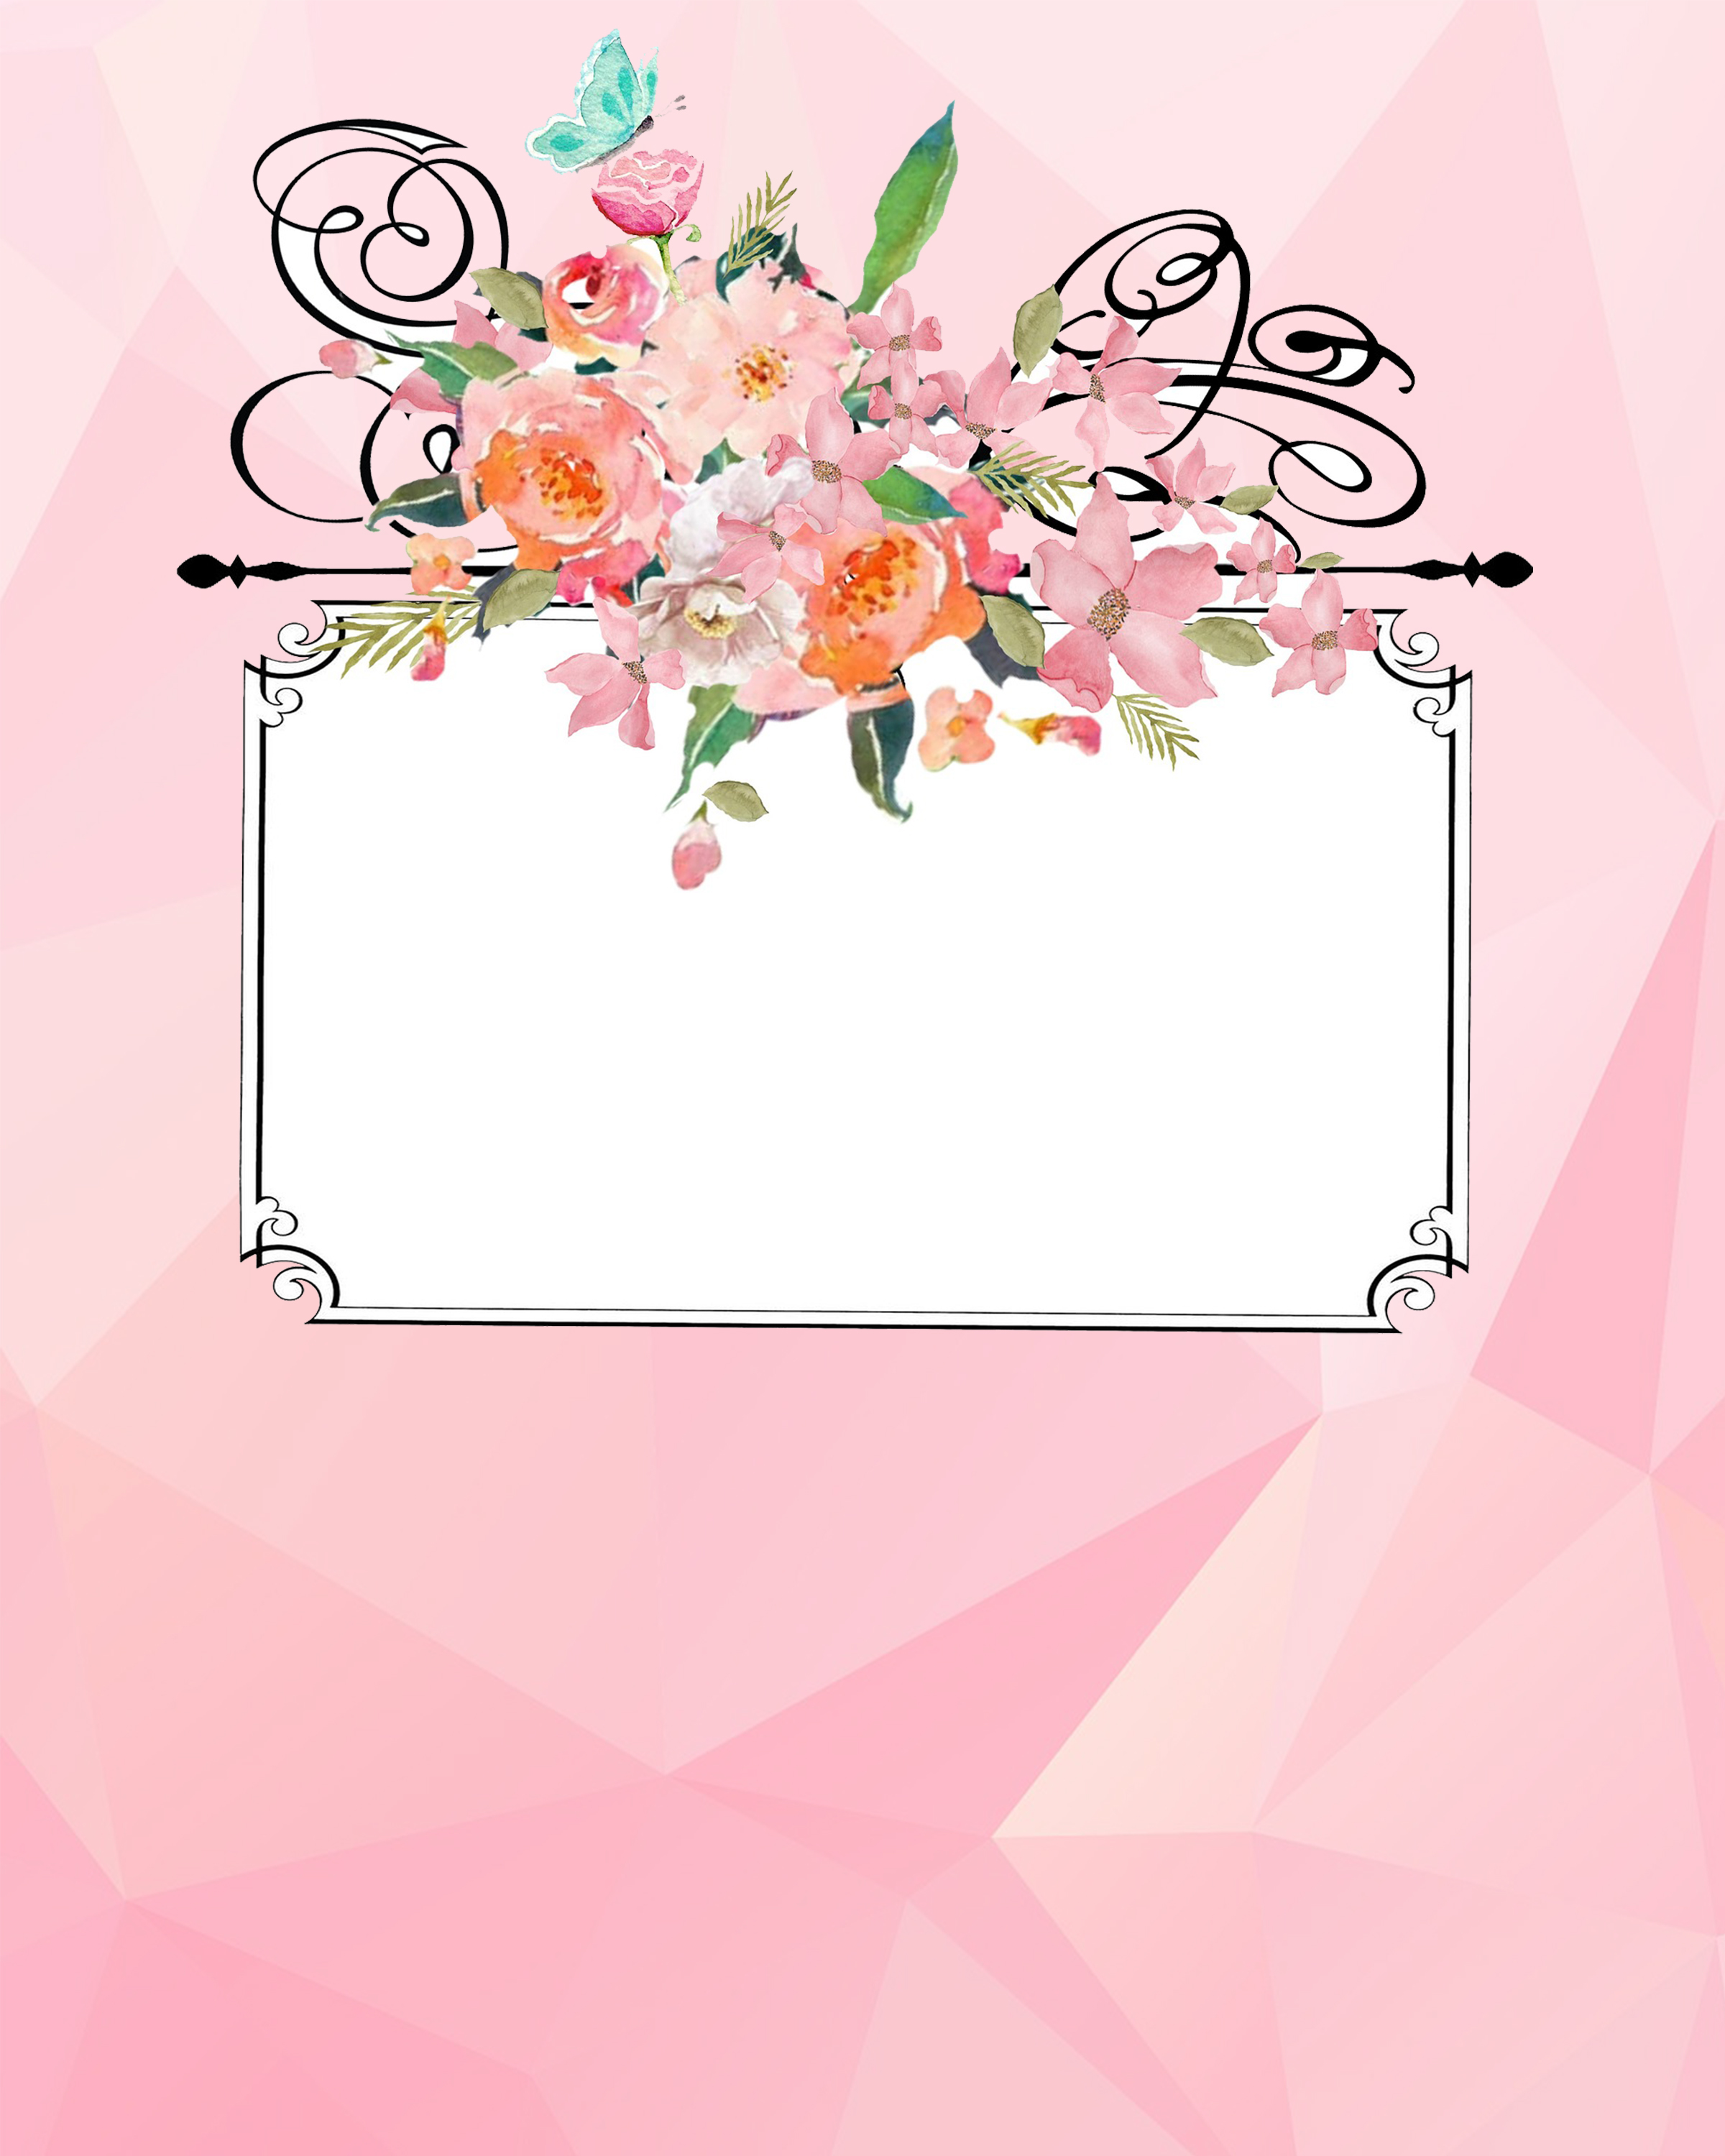 FREE Download Back to School Binder Covers Fanciful